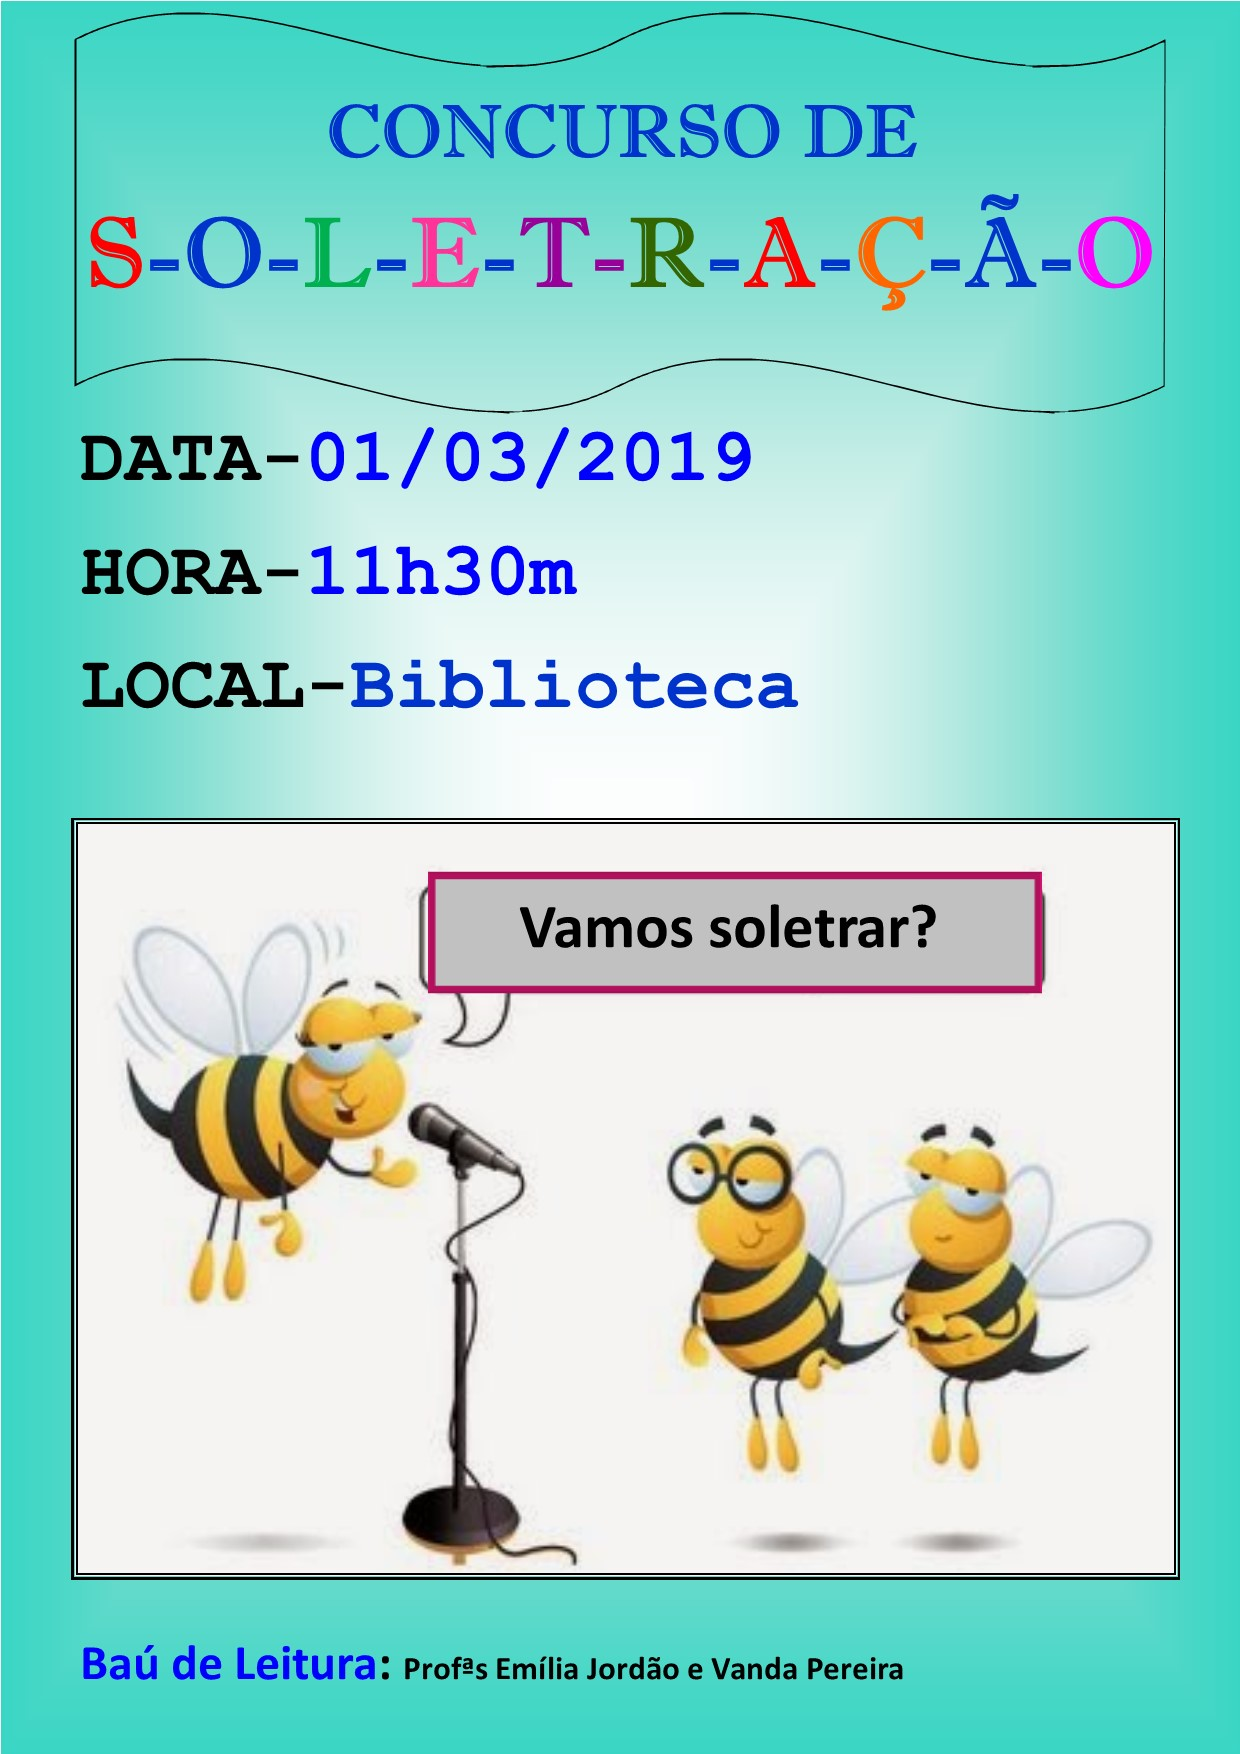 Cartaz soletracao